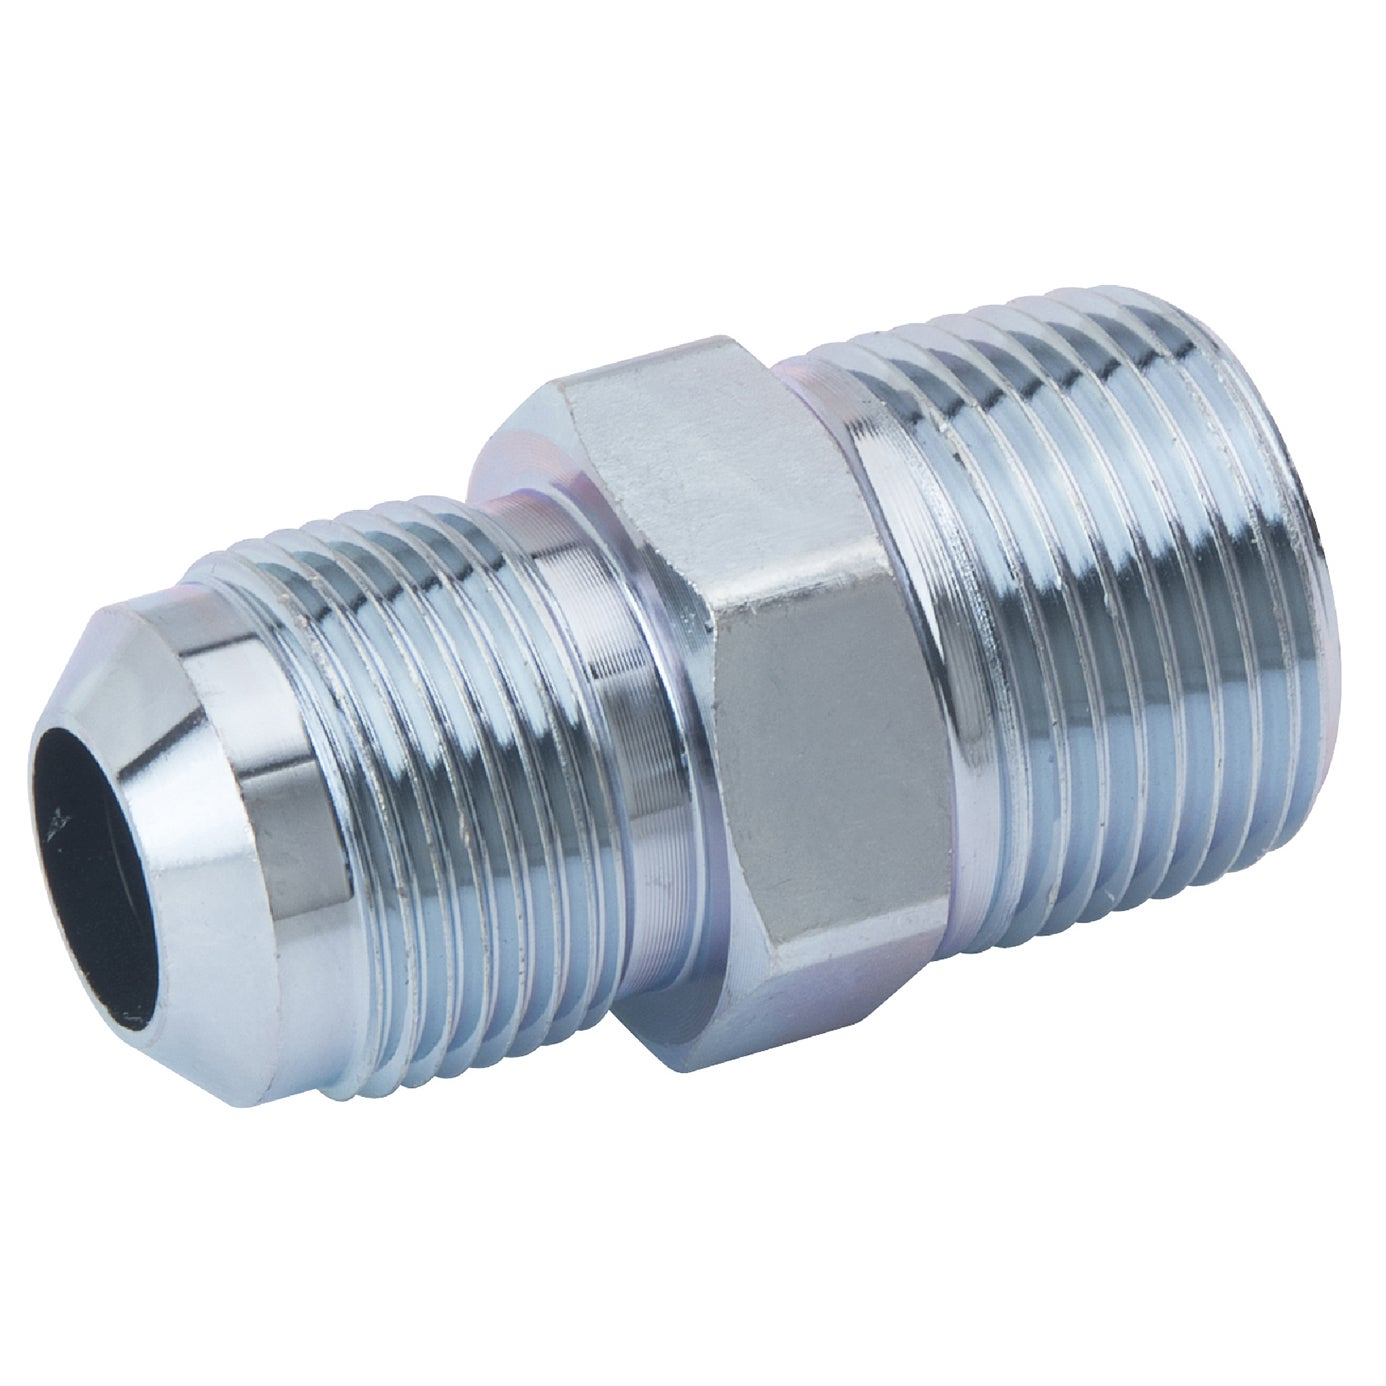 Brass Craft Pssc-64 Gas Fitting Adapter (Fitting Adapter ...